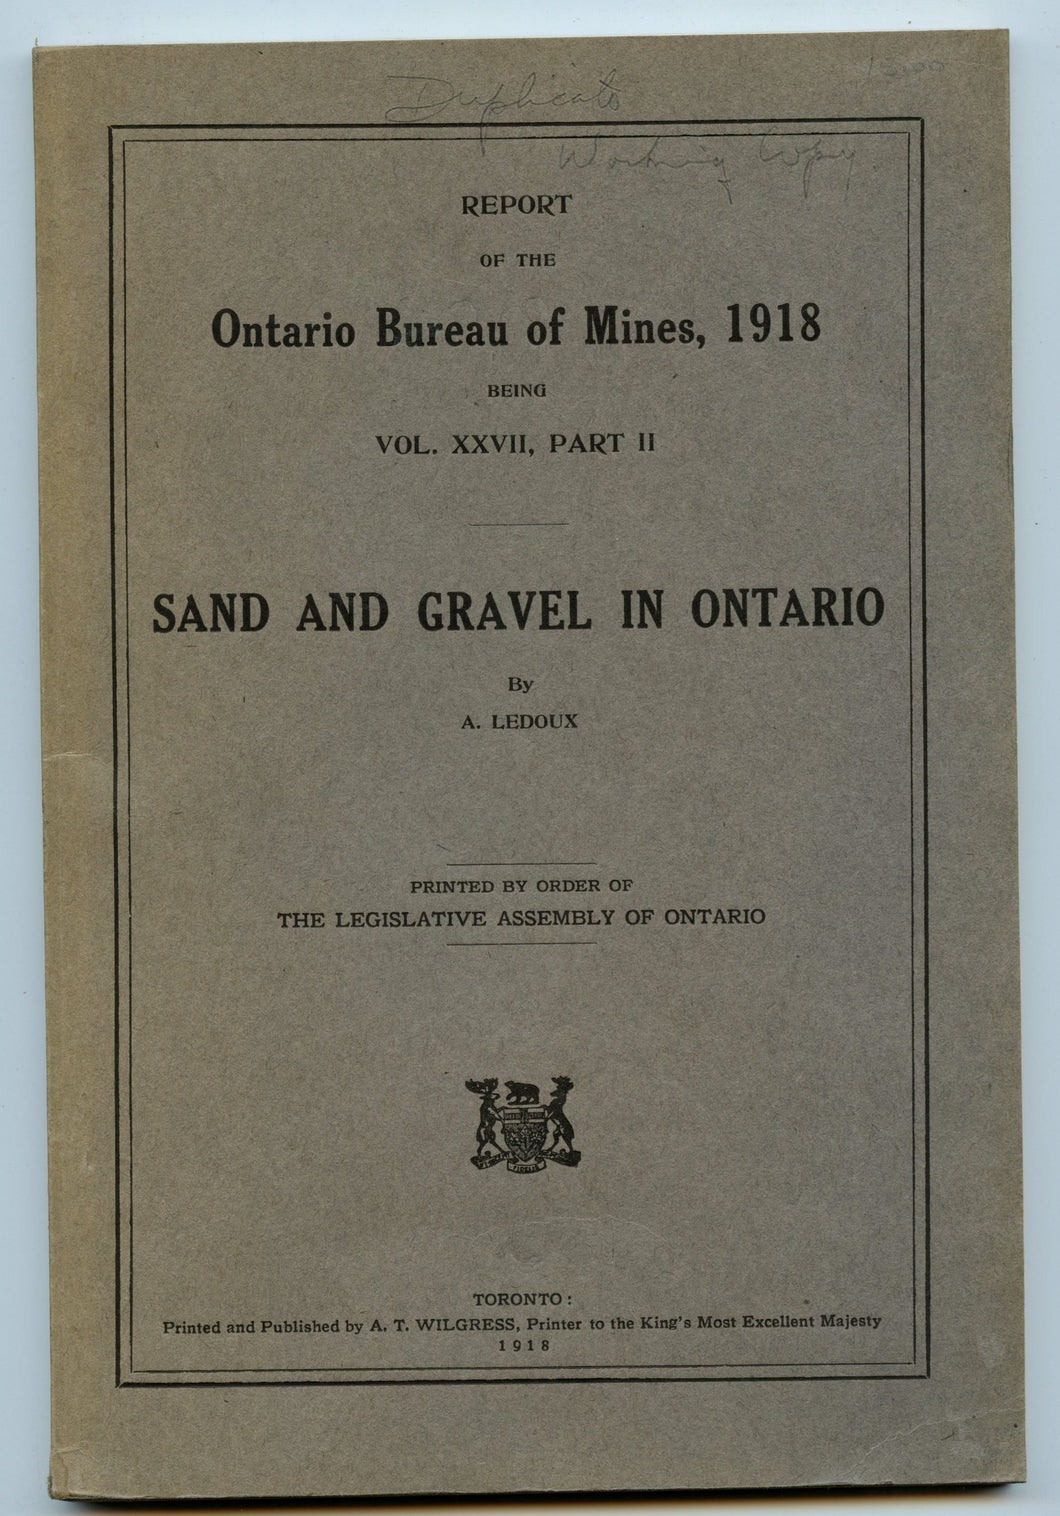 Sand and Gravel in Ontario